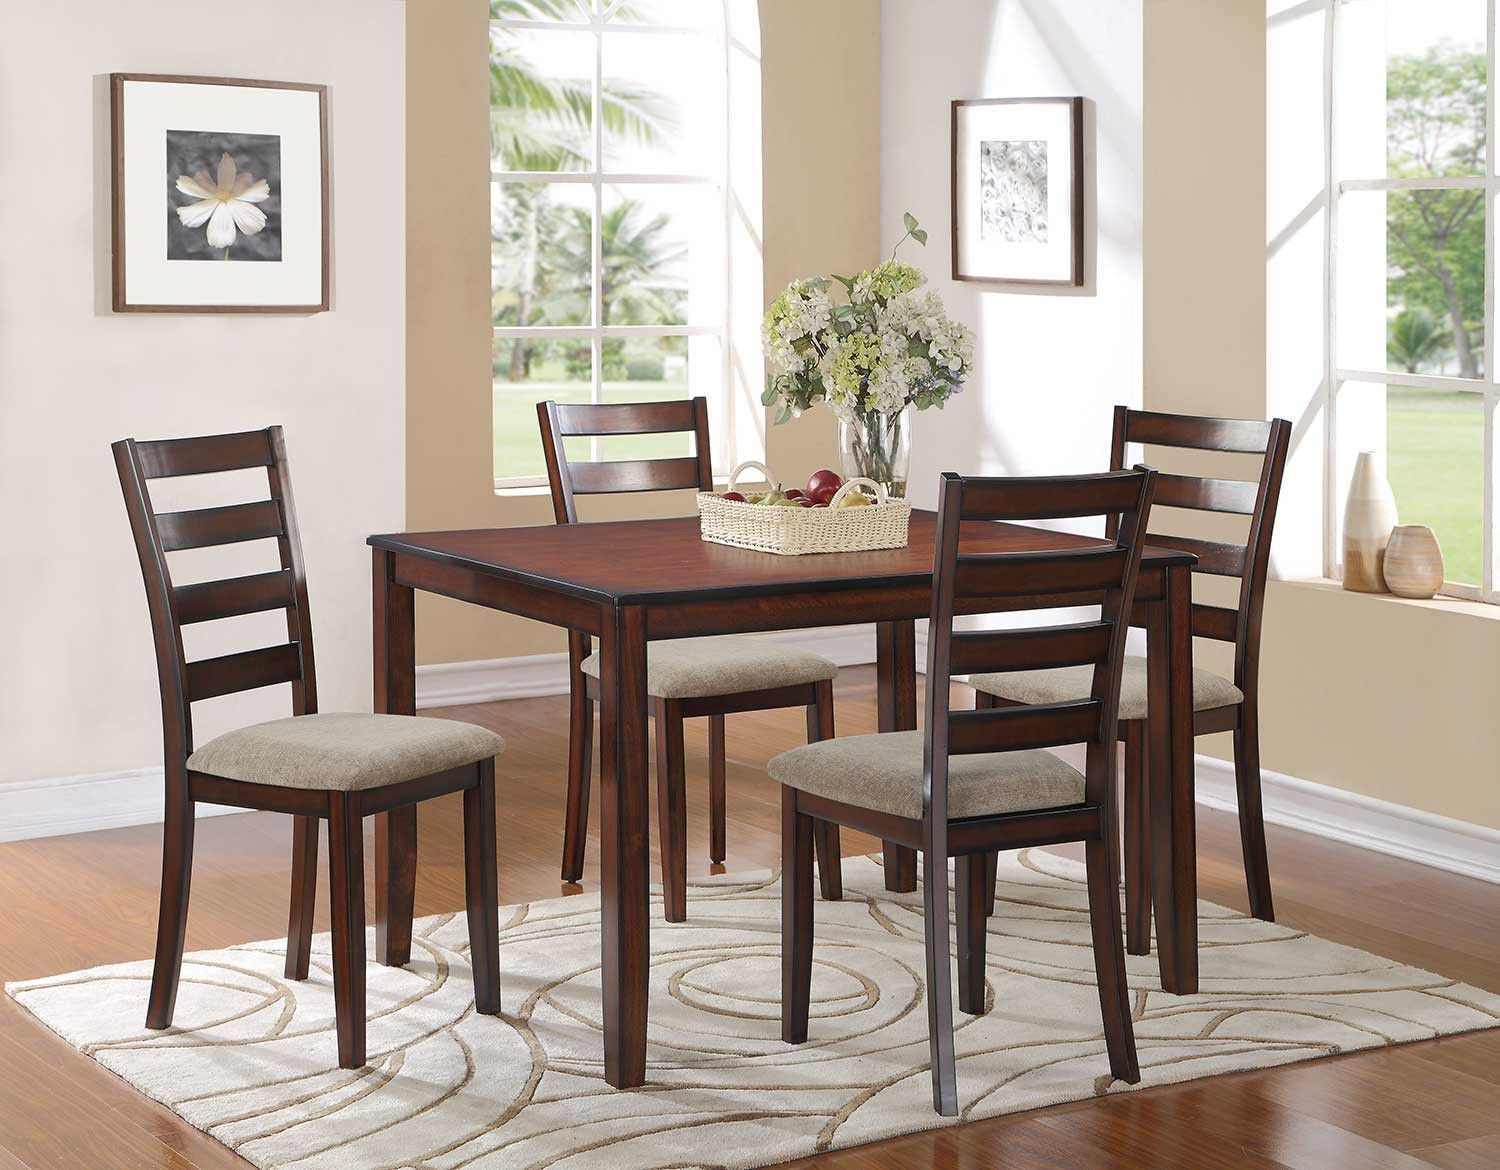 23+ Dining room sets houston Top